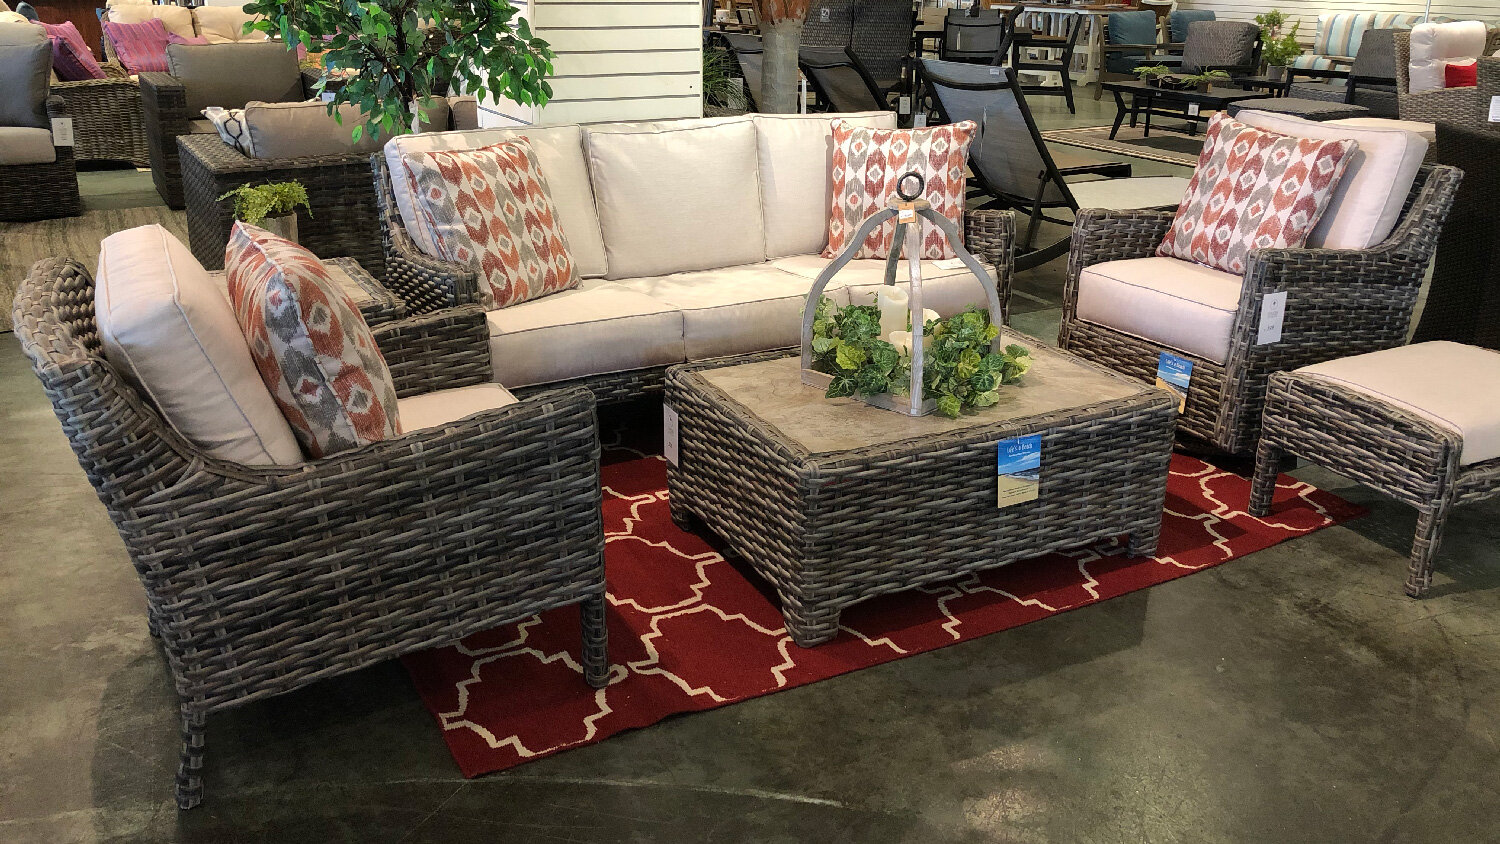 Inverness Outdoor Furniture Collection Oasis Outdoor Of Charlotte Nc Outdoor Wicker Patio Furniture Hot Tubs Swimspas Pools Grills Big Green Egg